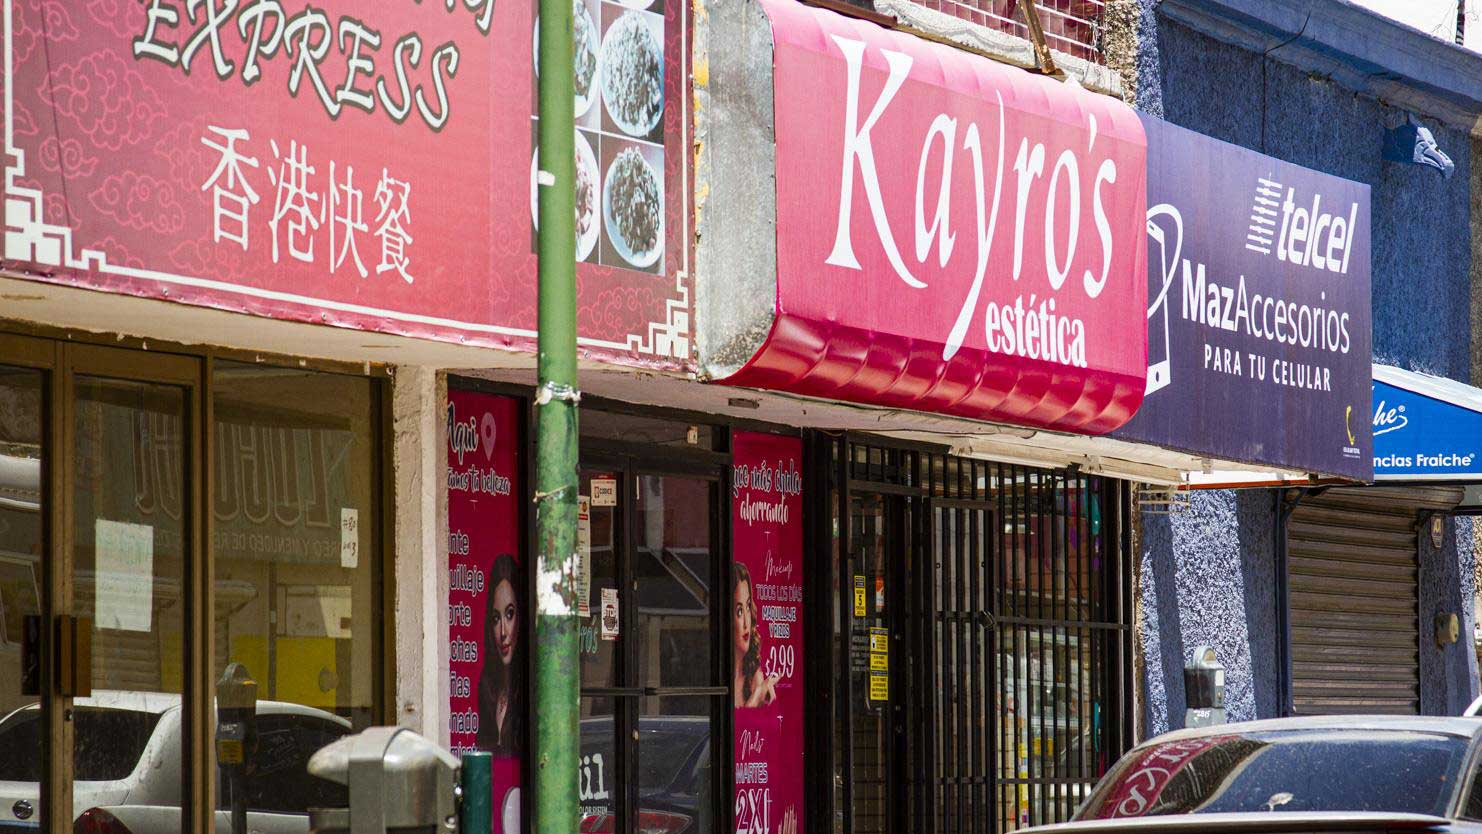 The downtown location of Paty López's family beauty business Kayros is one of two that have closed so far. The other four are teetering, she said.